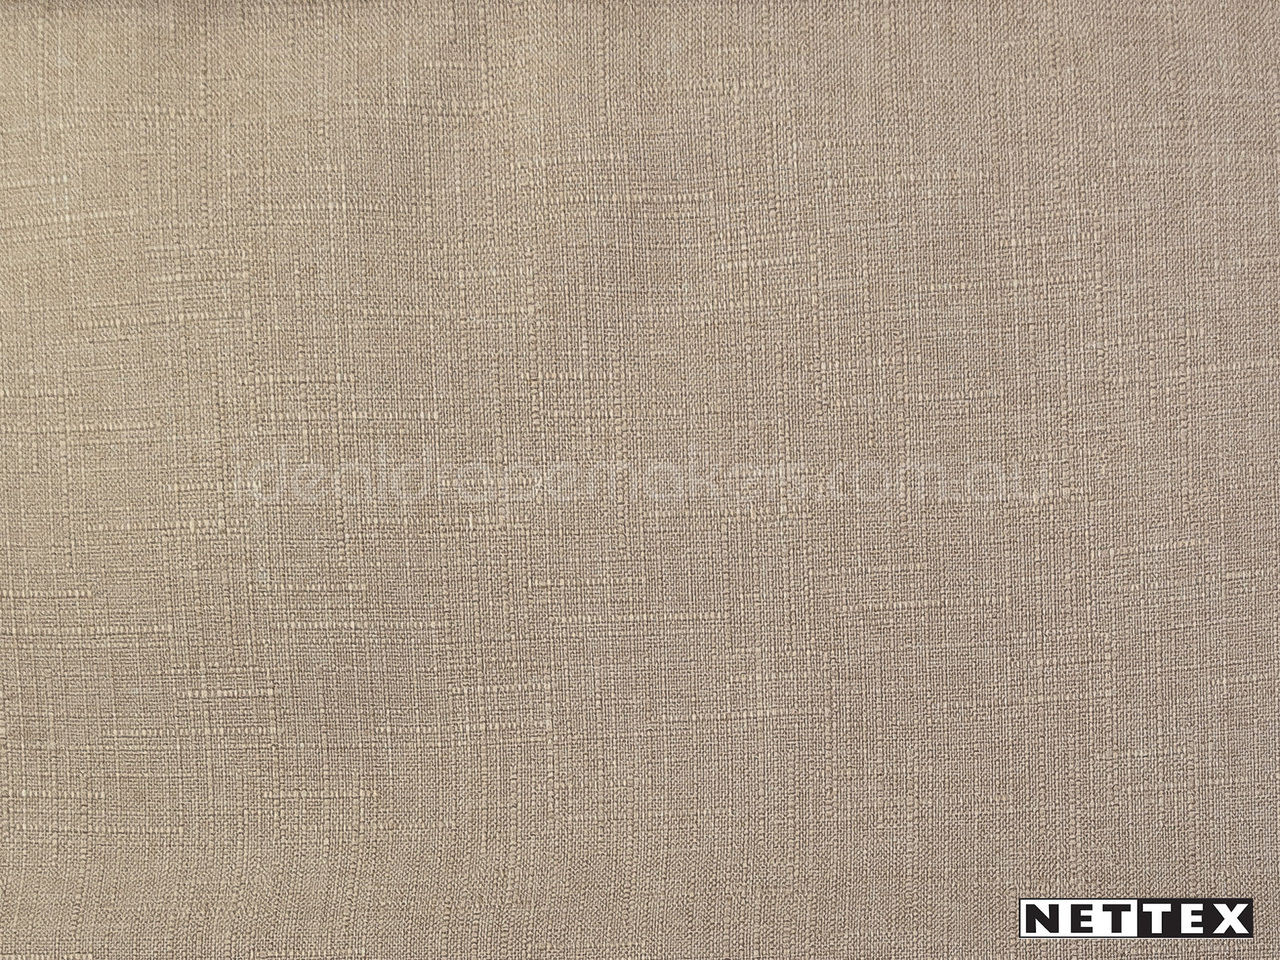 Nettex Habitat Broadwalk Blockout Nr1b Curtain Fabric